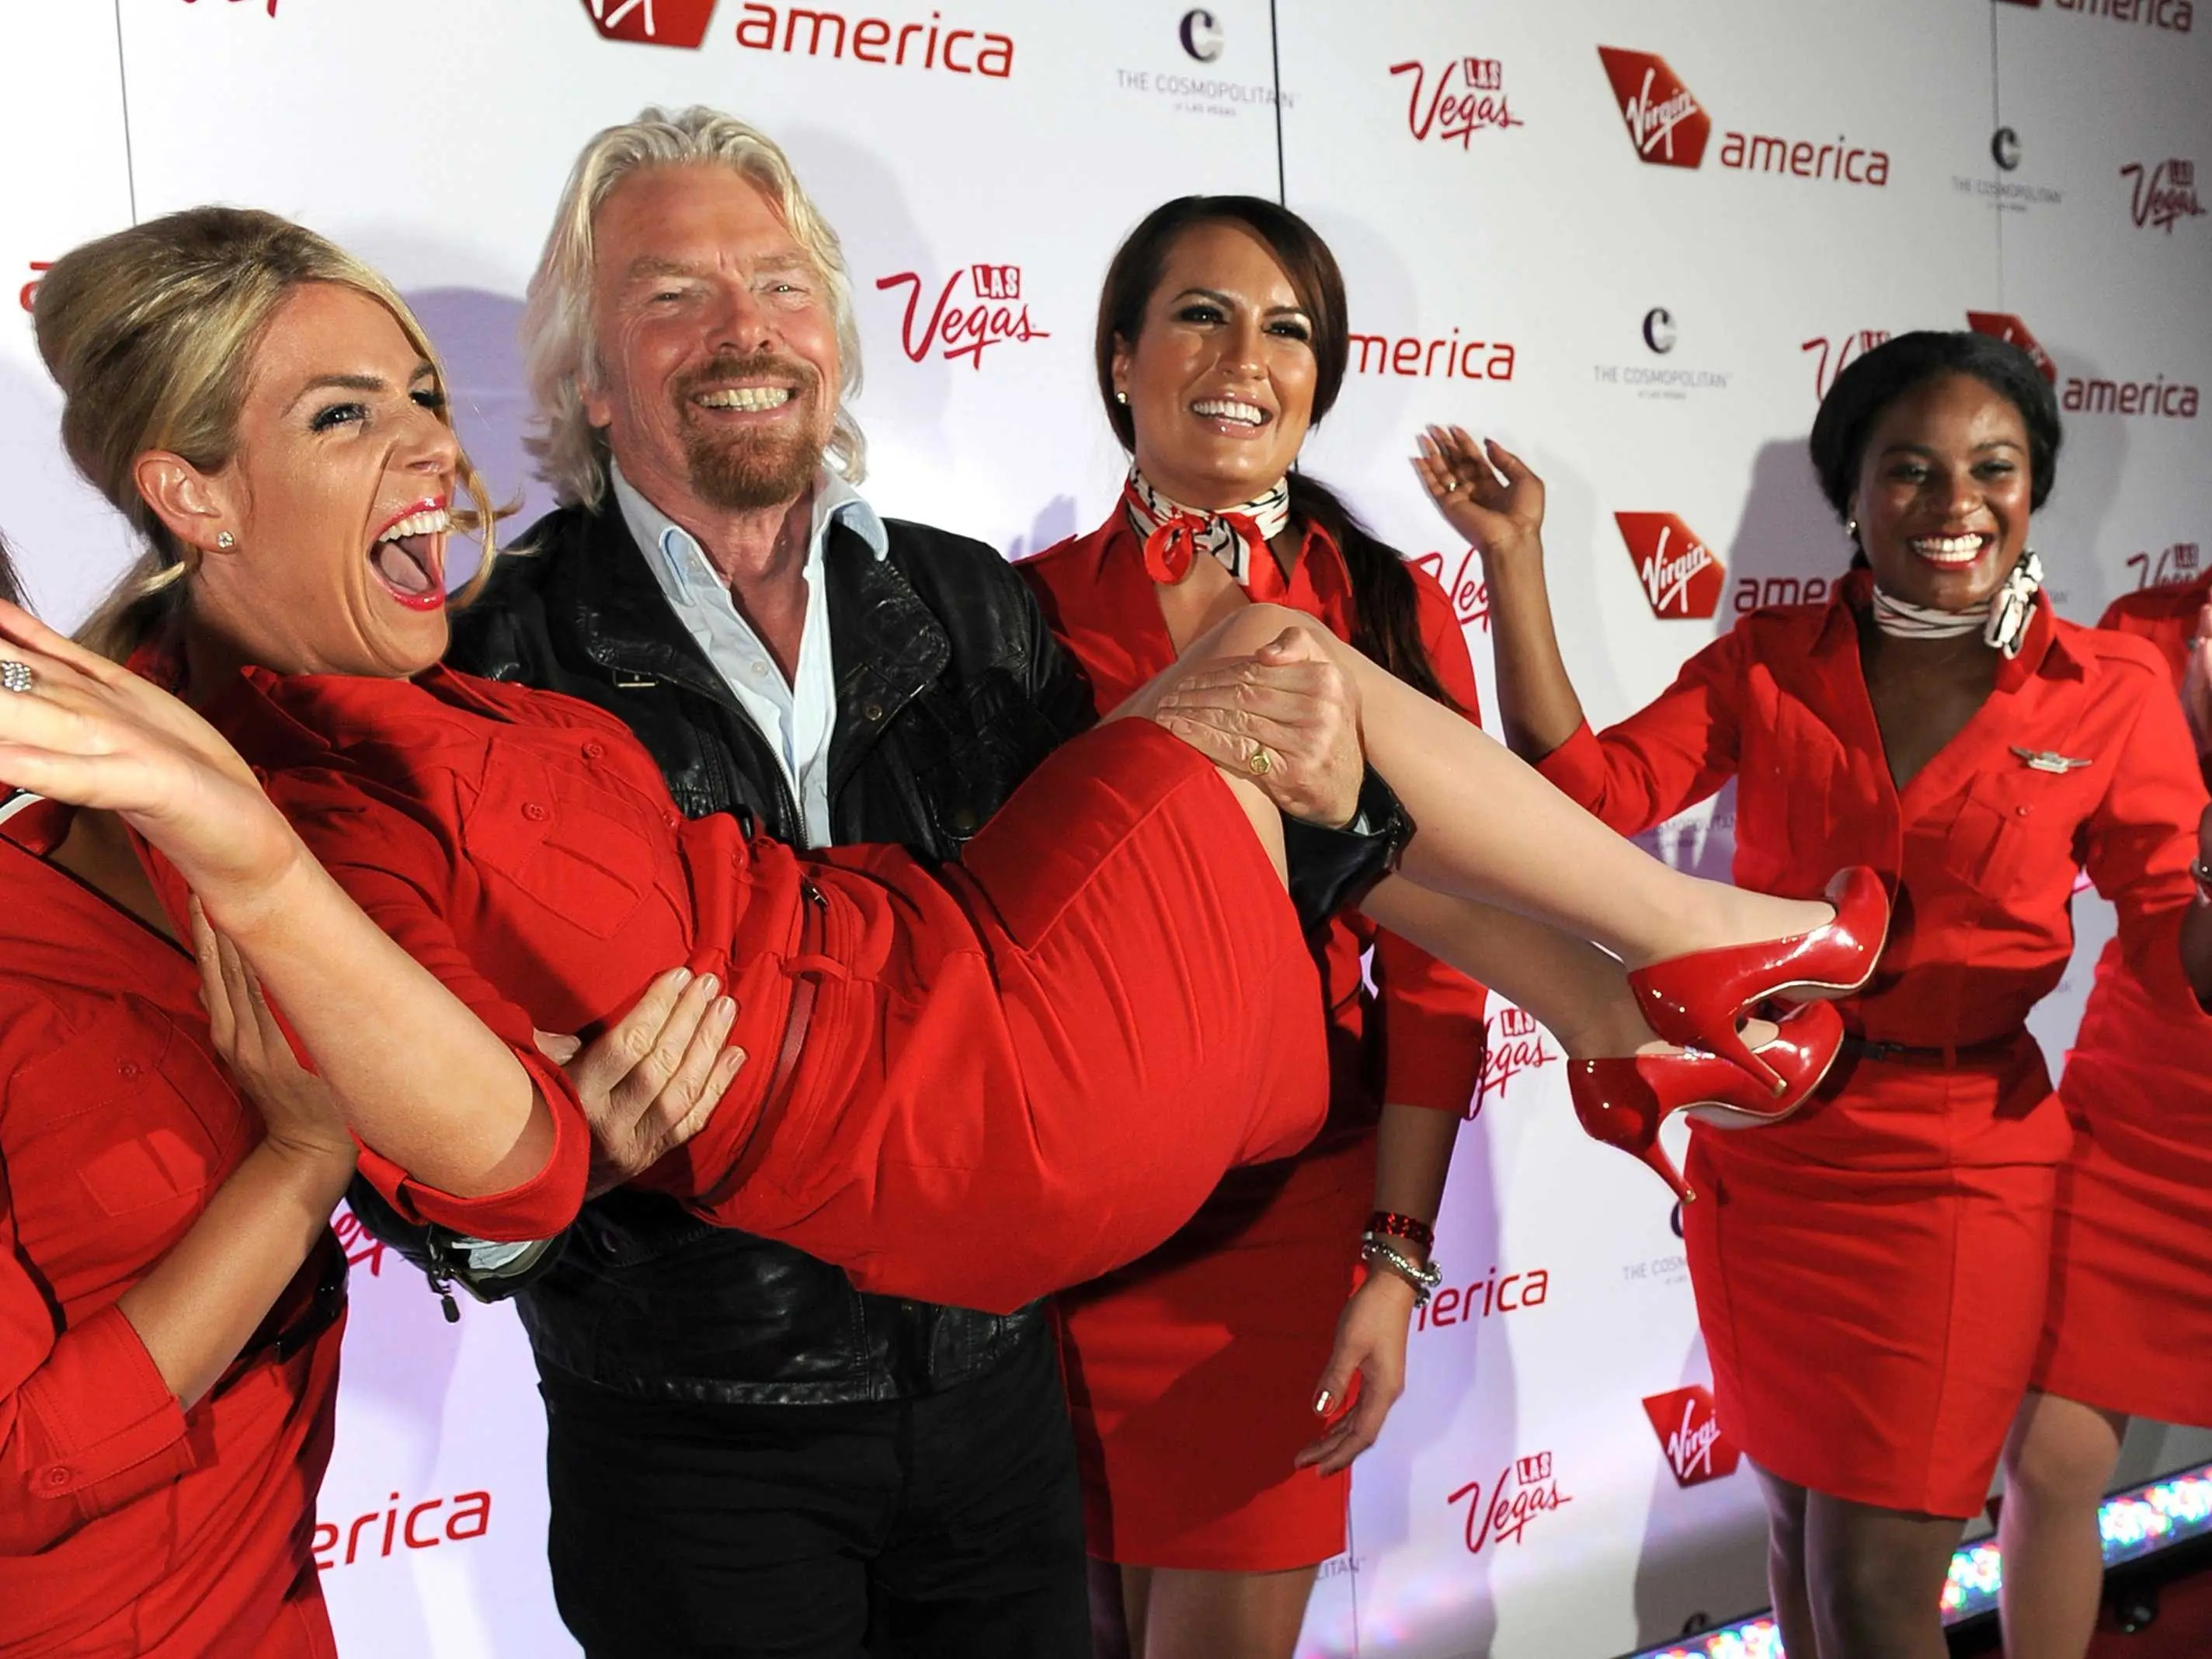 Relationships - Richard Branson said 'In business companies that want to survive are smart enough to know that caring and cooperation are key.'